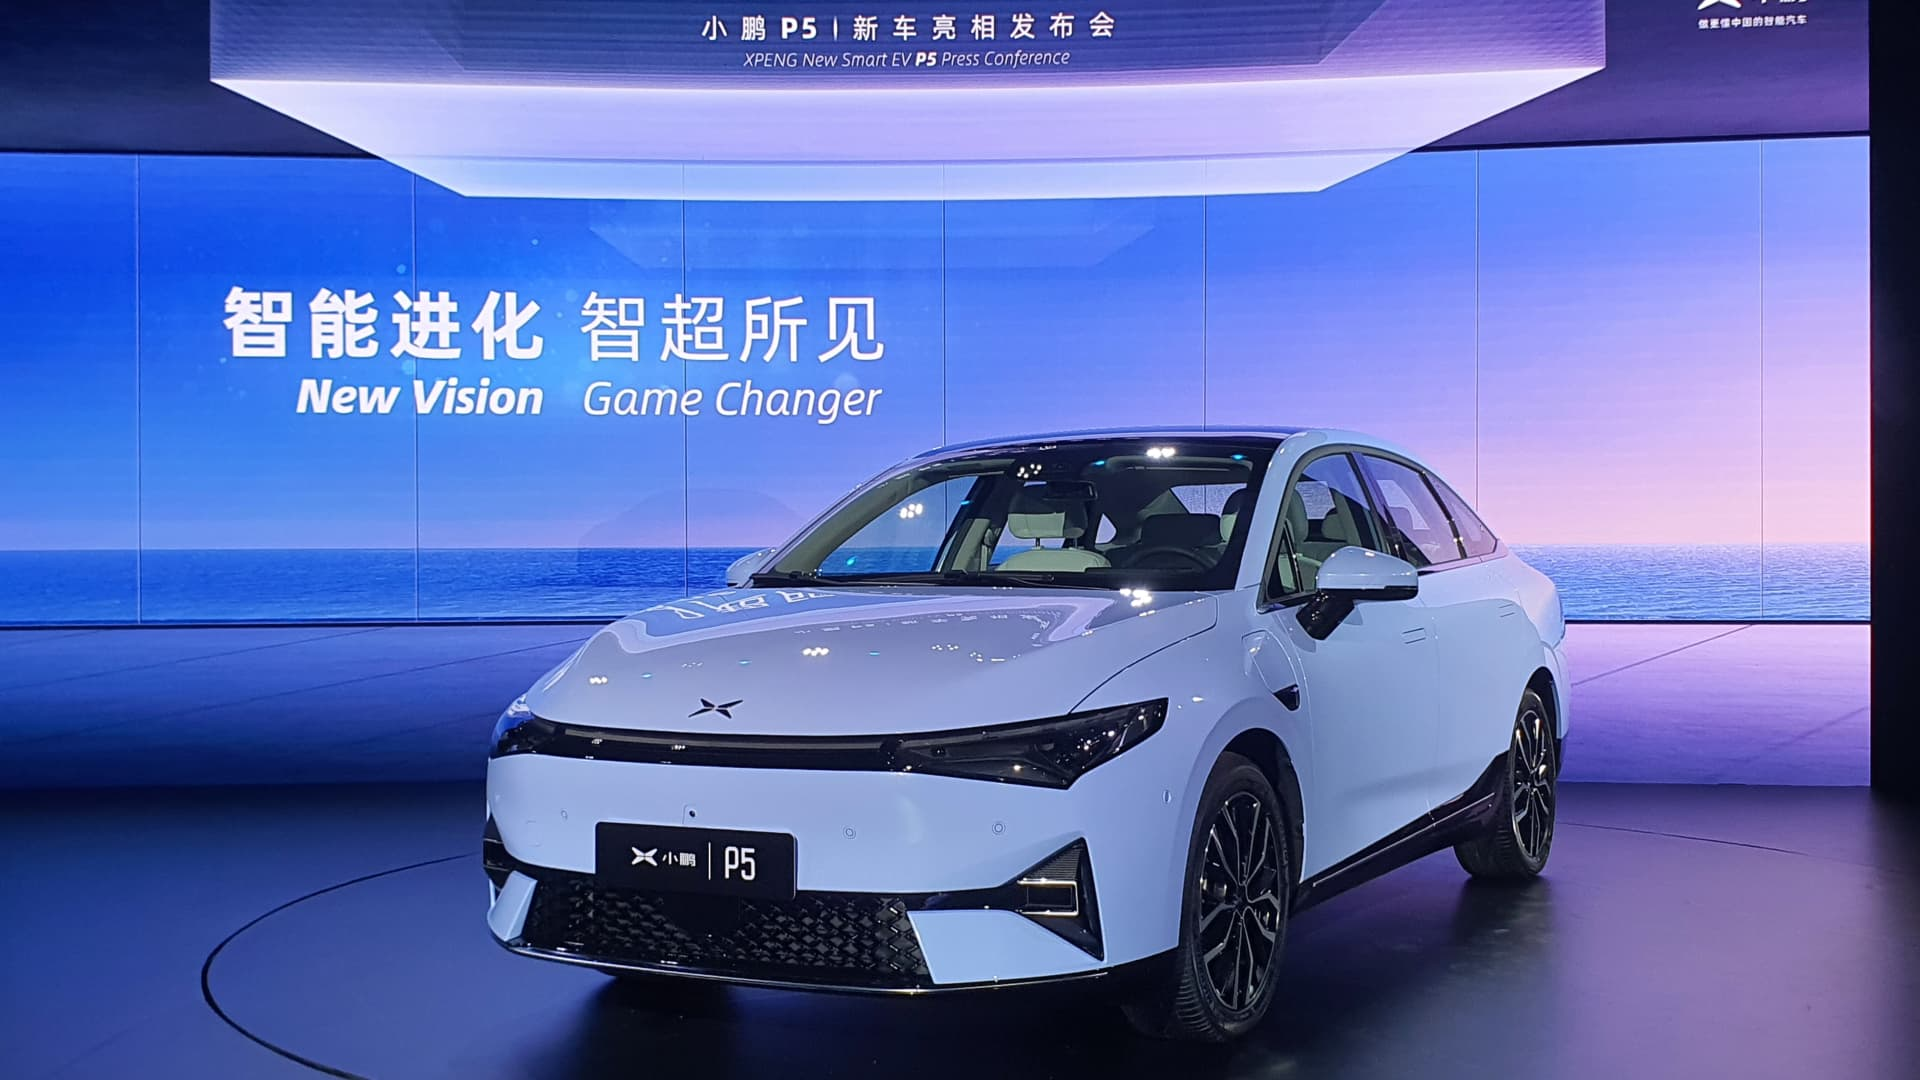 Xpeng Motors launches the P5 sedan at an event in Guangzhou, China on April 14, 2021. The P5 is Xpeng's third production model and features so-called Lidar technology.